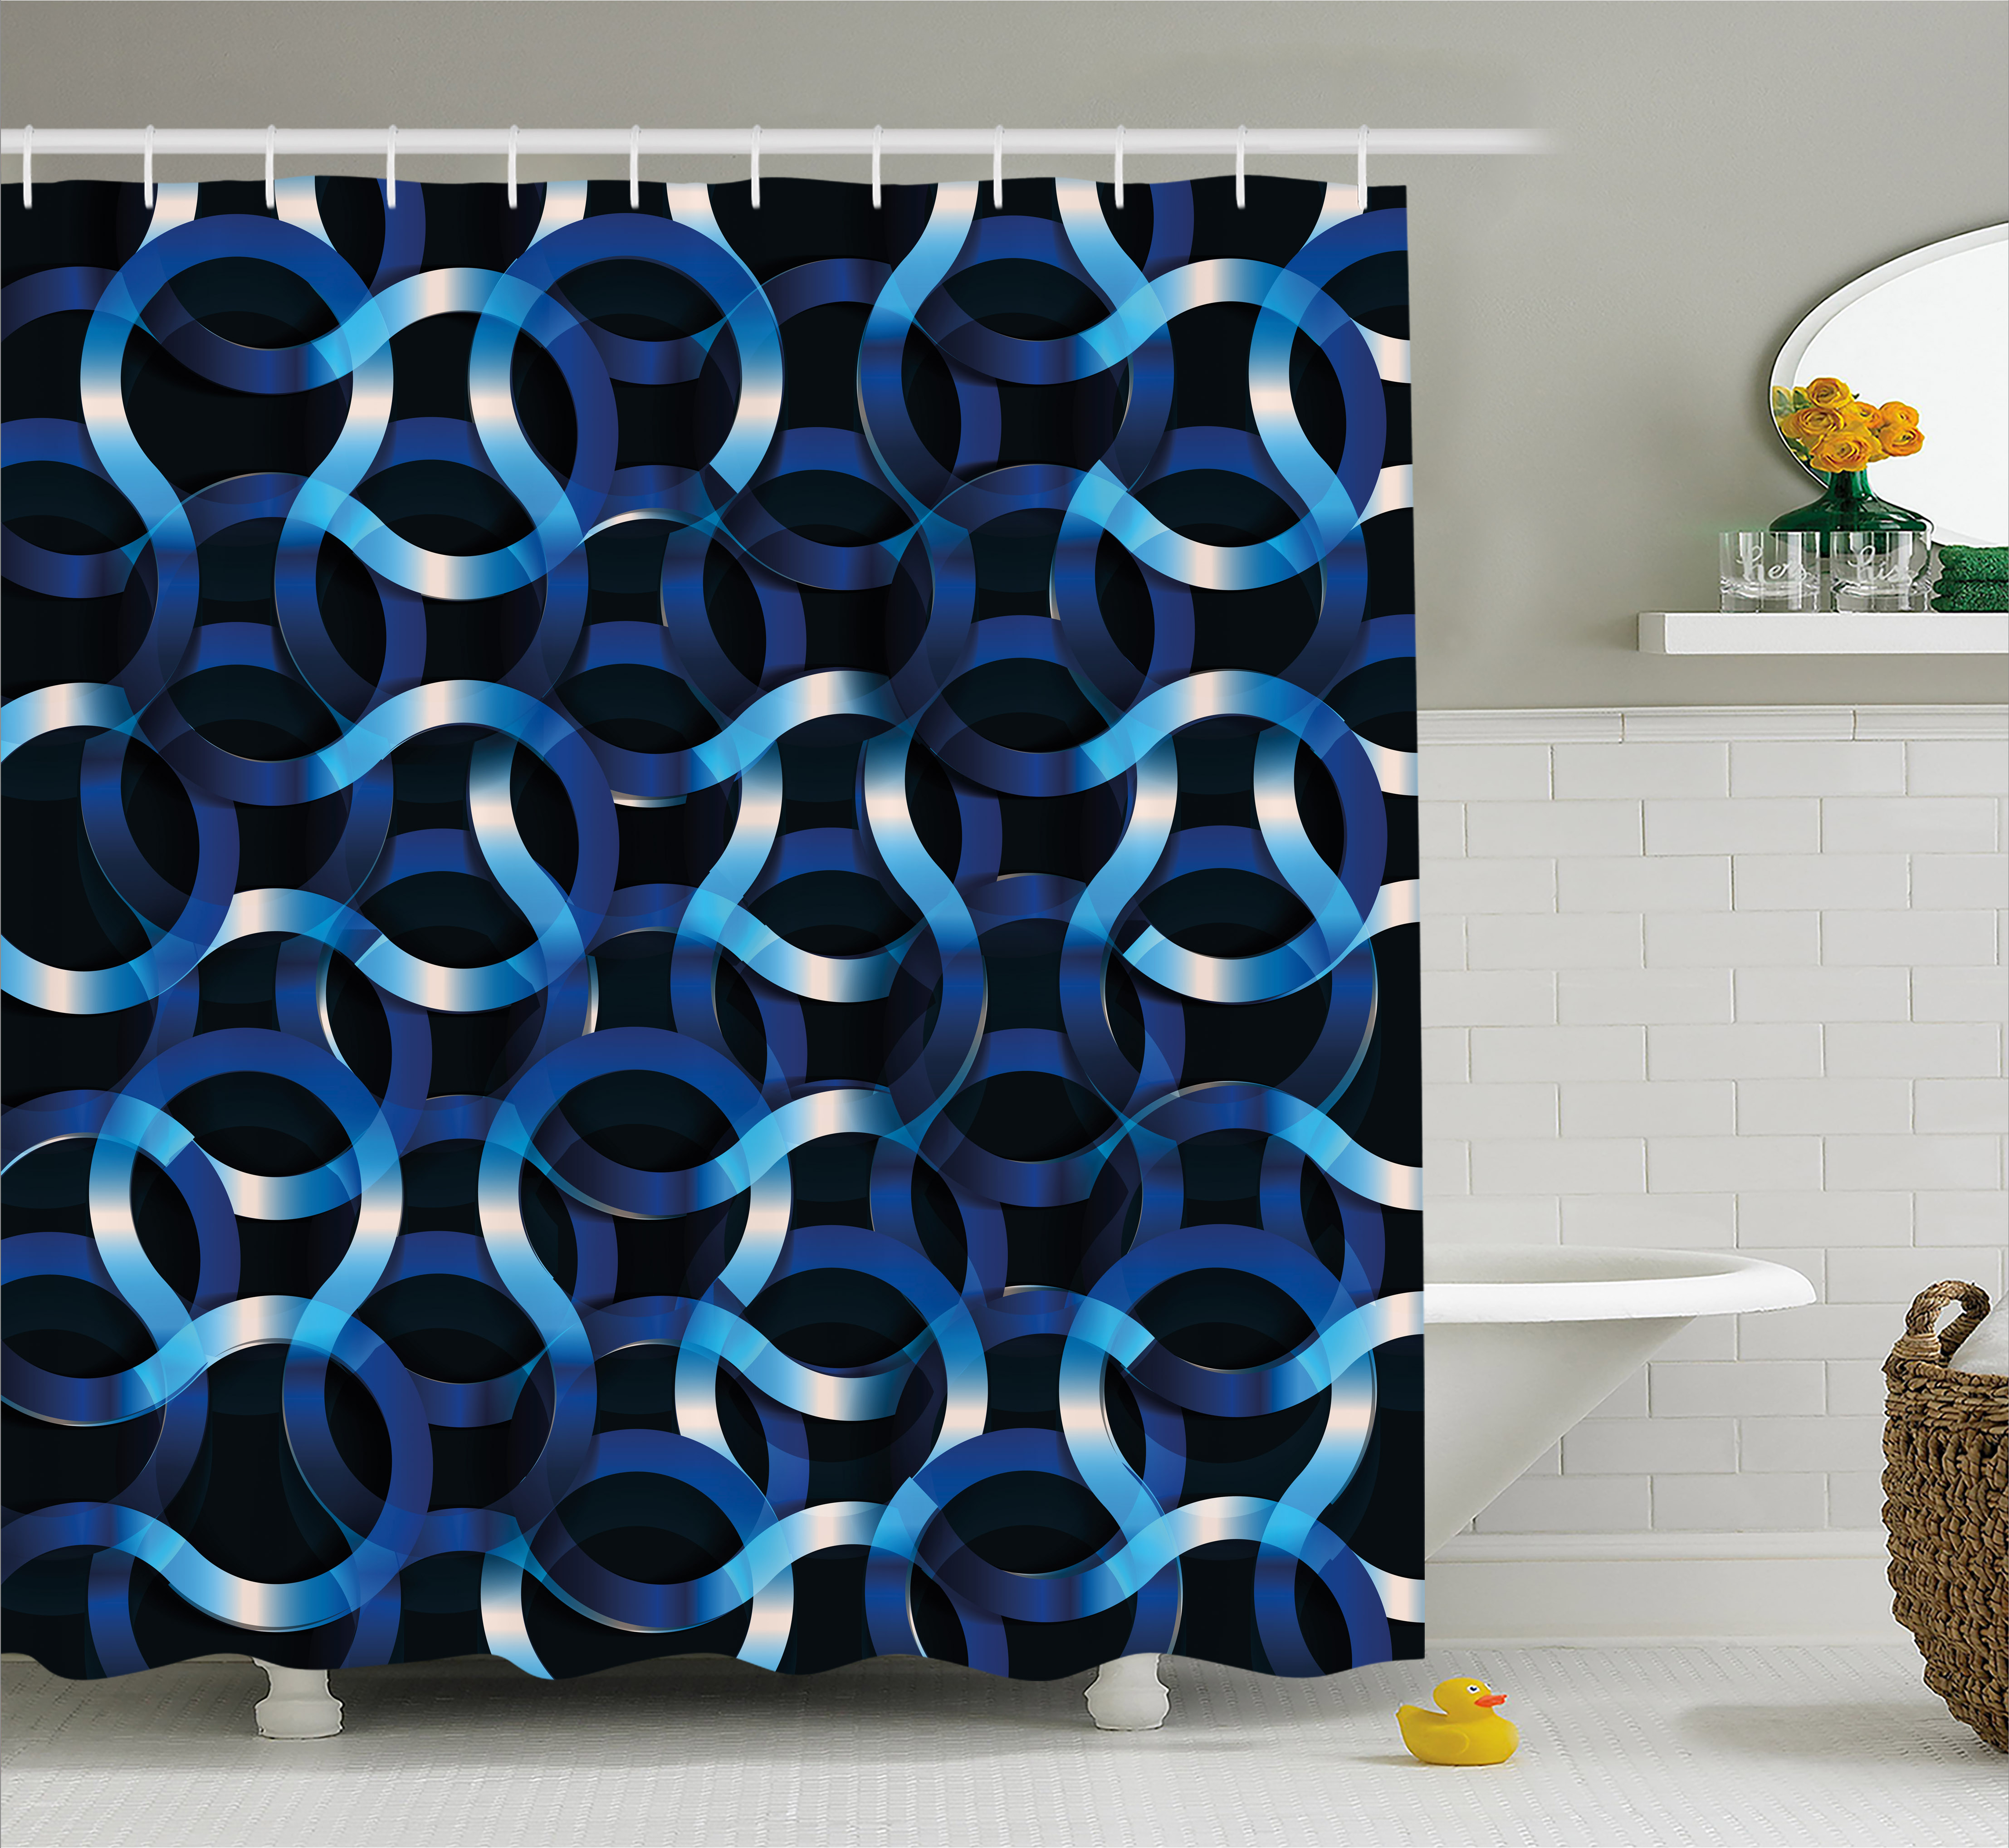 Dark Blue Shower Curtain, Curvy Shaped Entangled Complex Industrial Modern Mesh Machinery Concept, Fabric Bathroom Set with Hooks, 69W X 70L Inches, Blue Dark Blue White, by Ambesonne